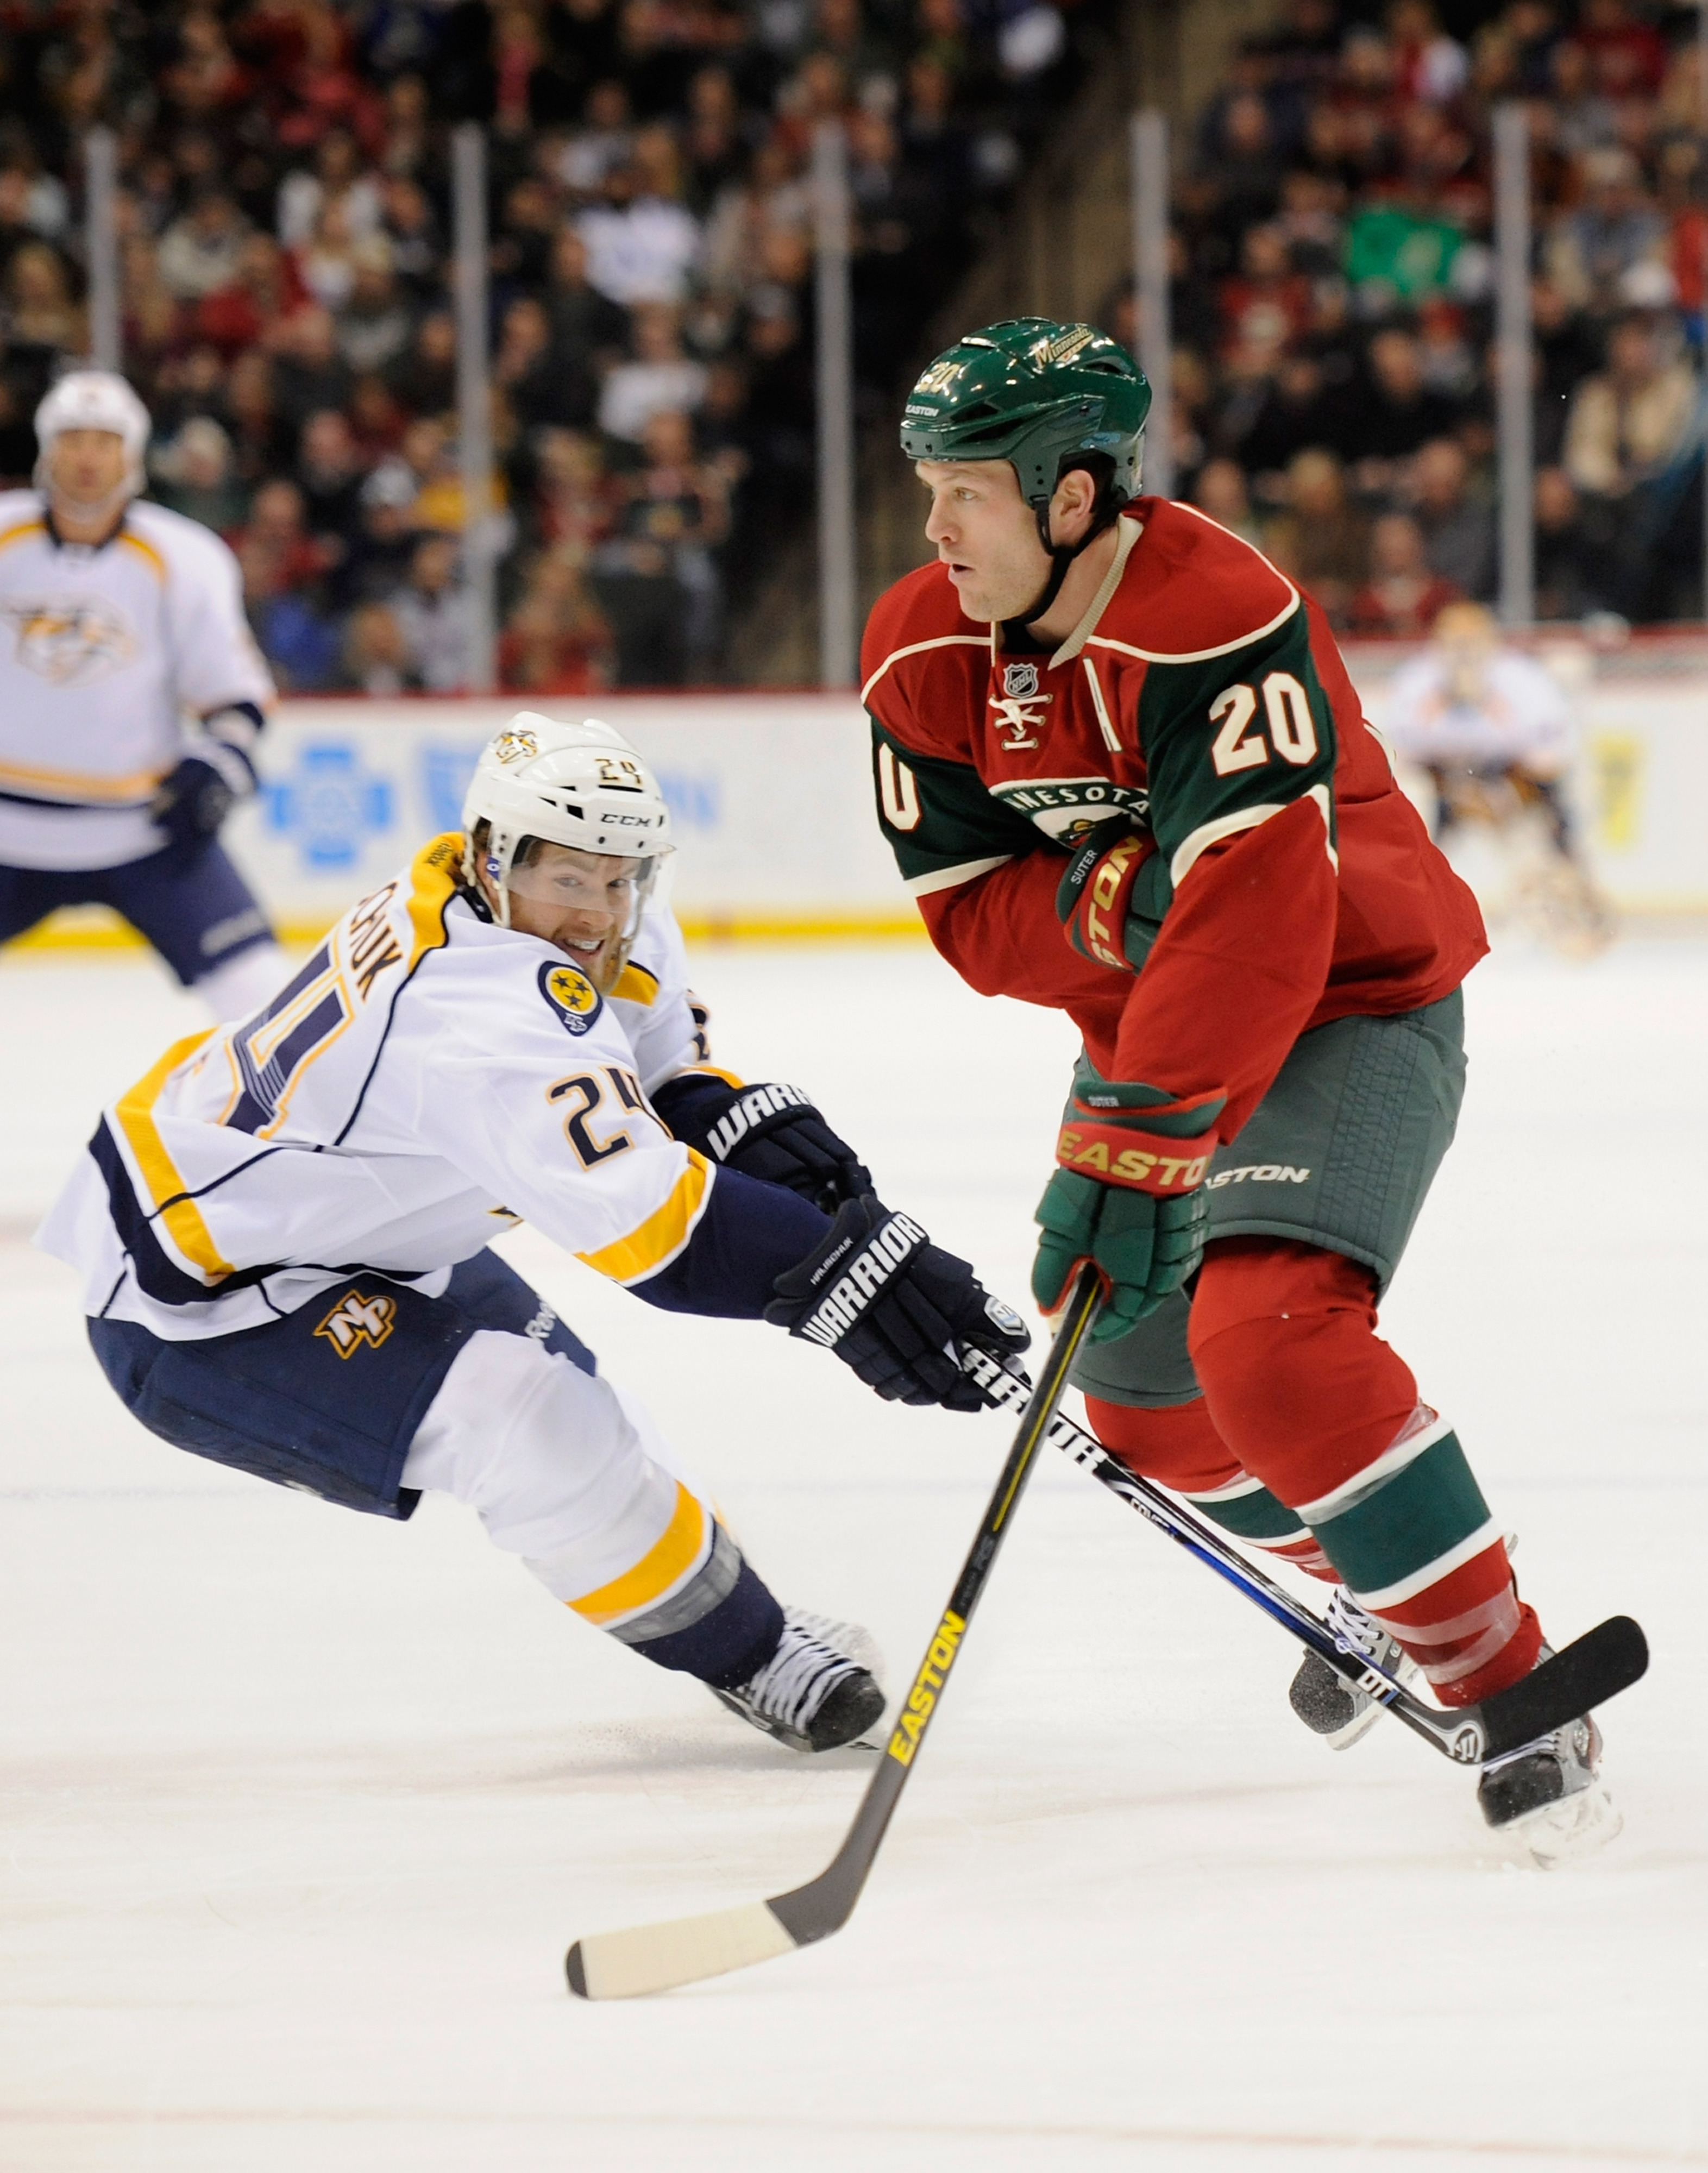 Under the proposed realignment, the Minnesota Wild could become a major rival for Nashville.